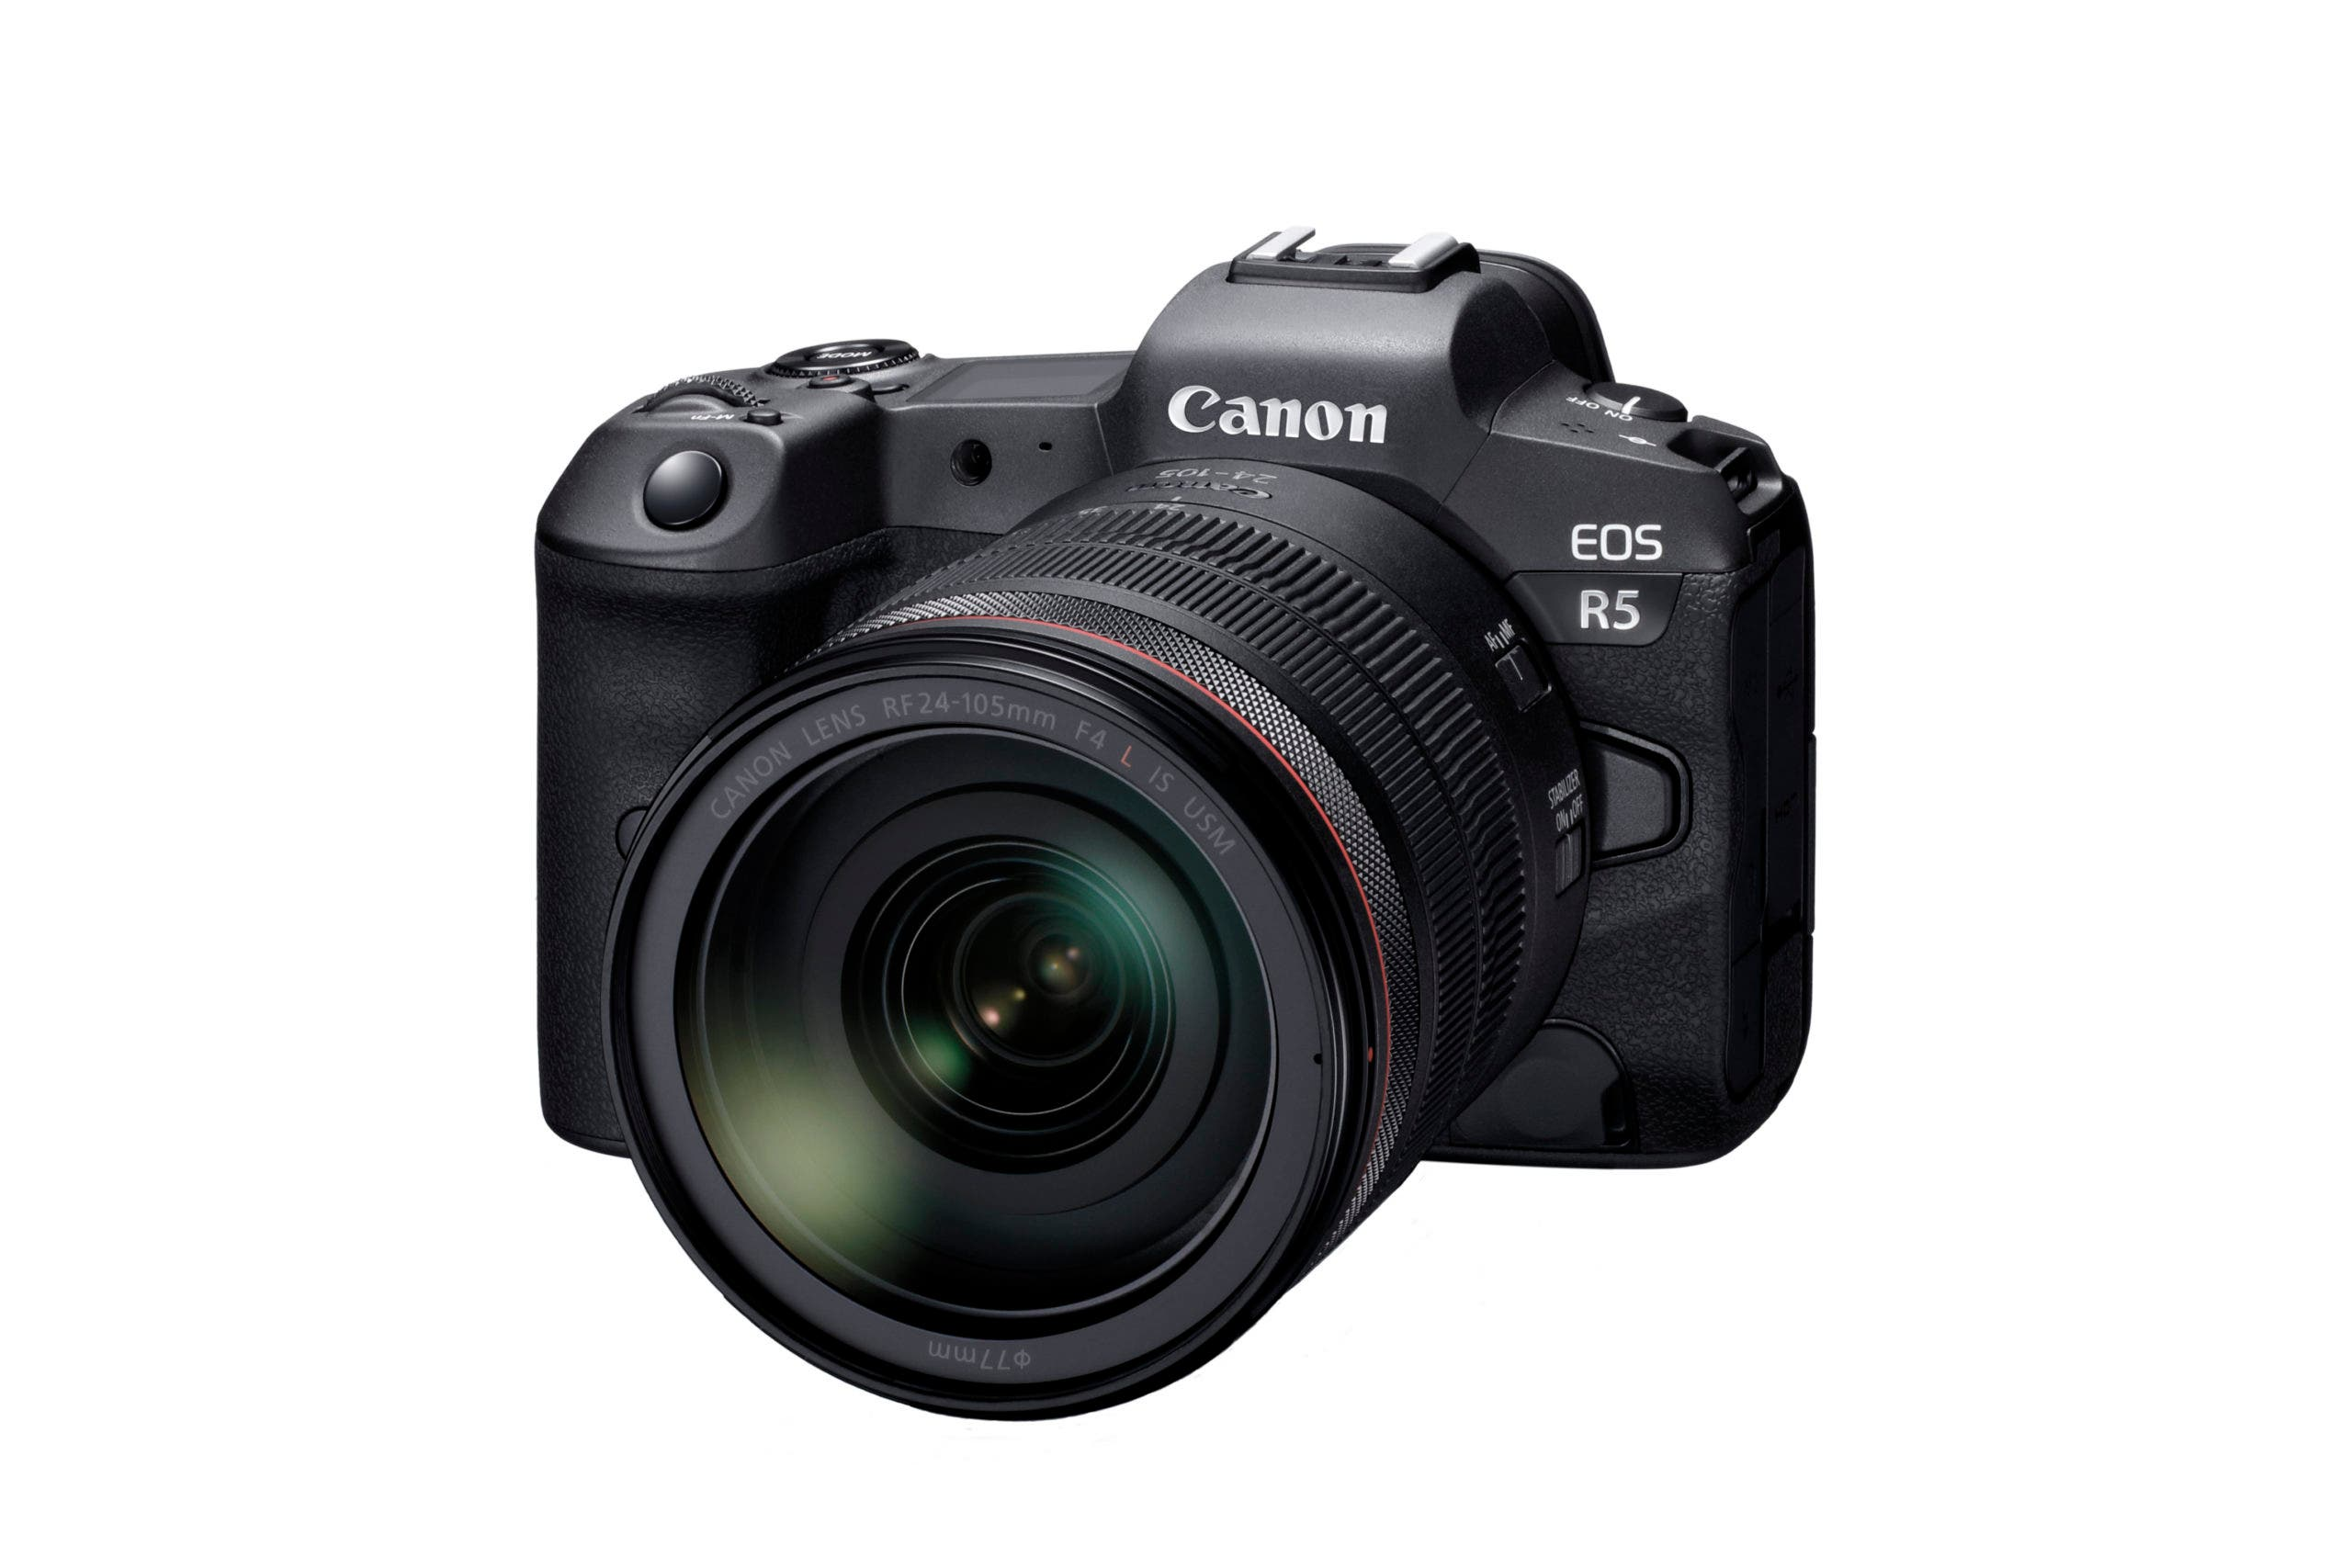 The Canon EOS R5 Is Real: Dual Card Slots, IBIS, and 20fps